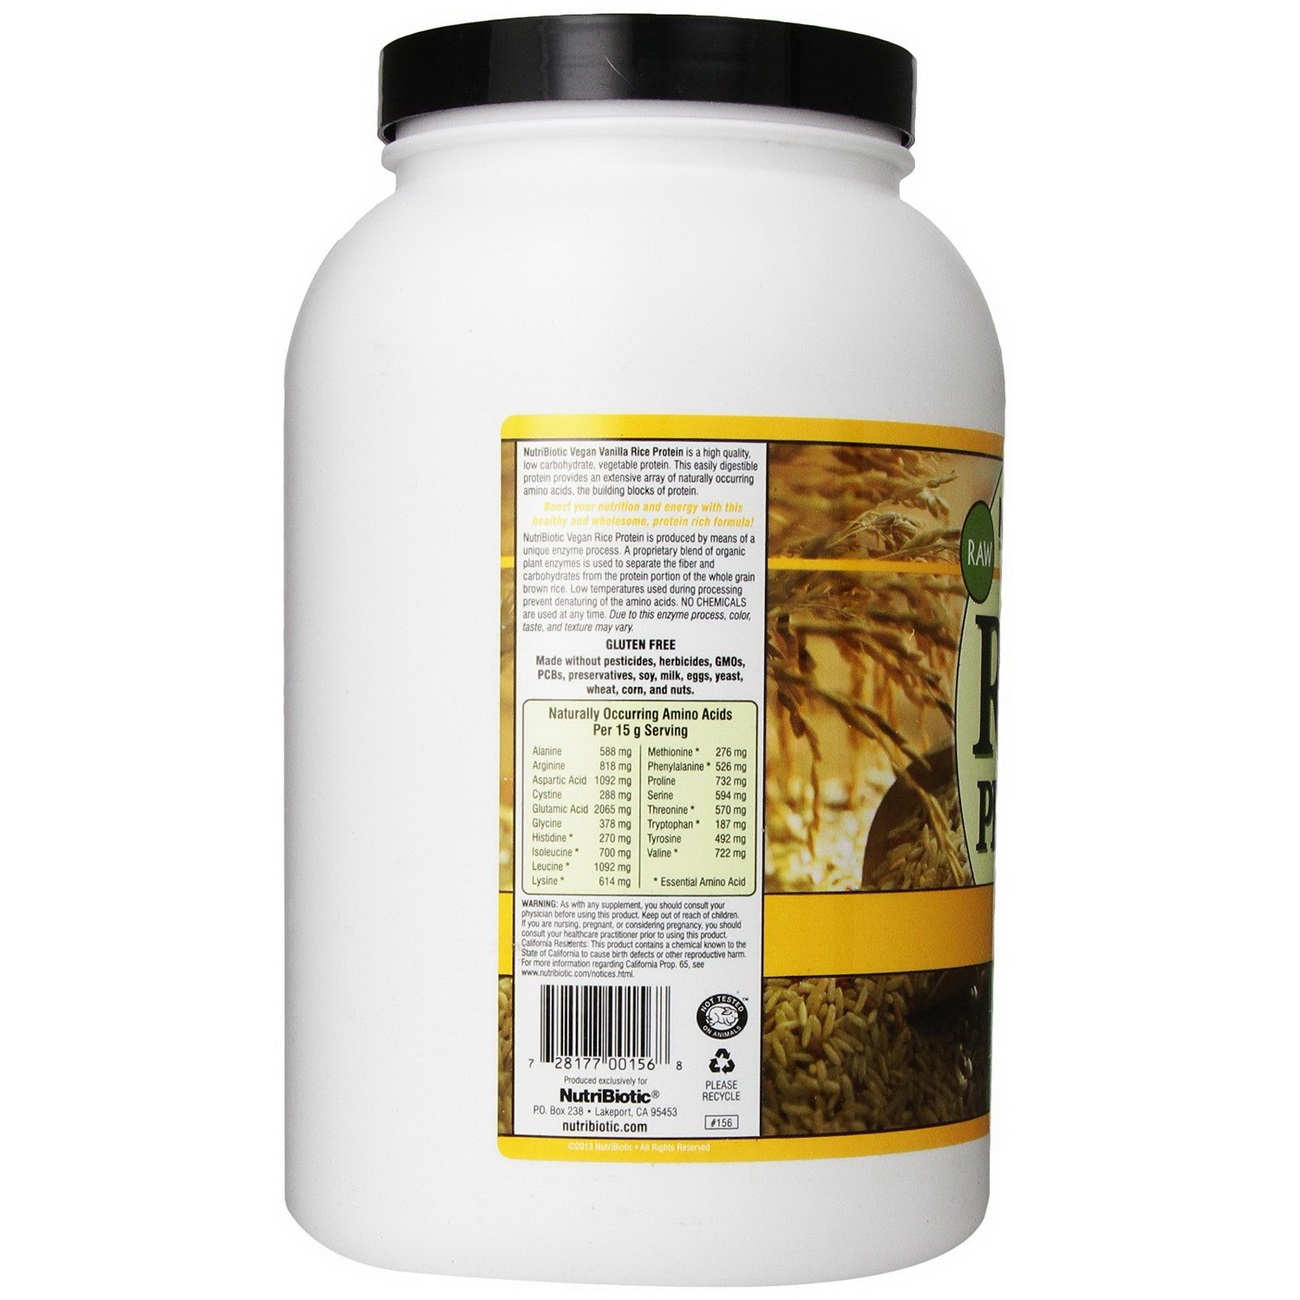 Nutribiotic Rice Protein Powder - Vegan